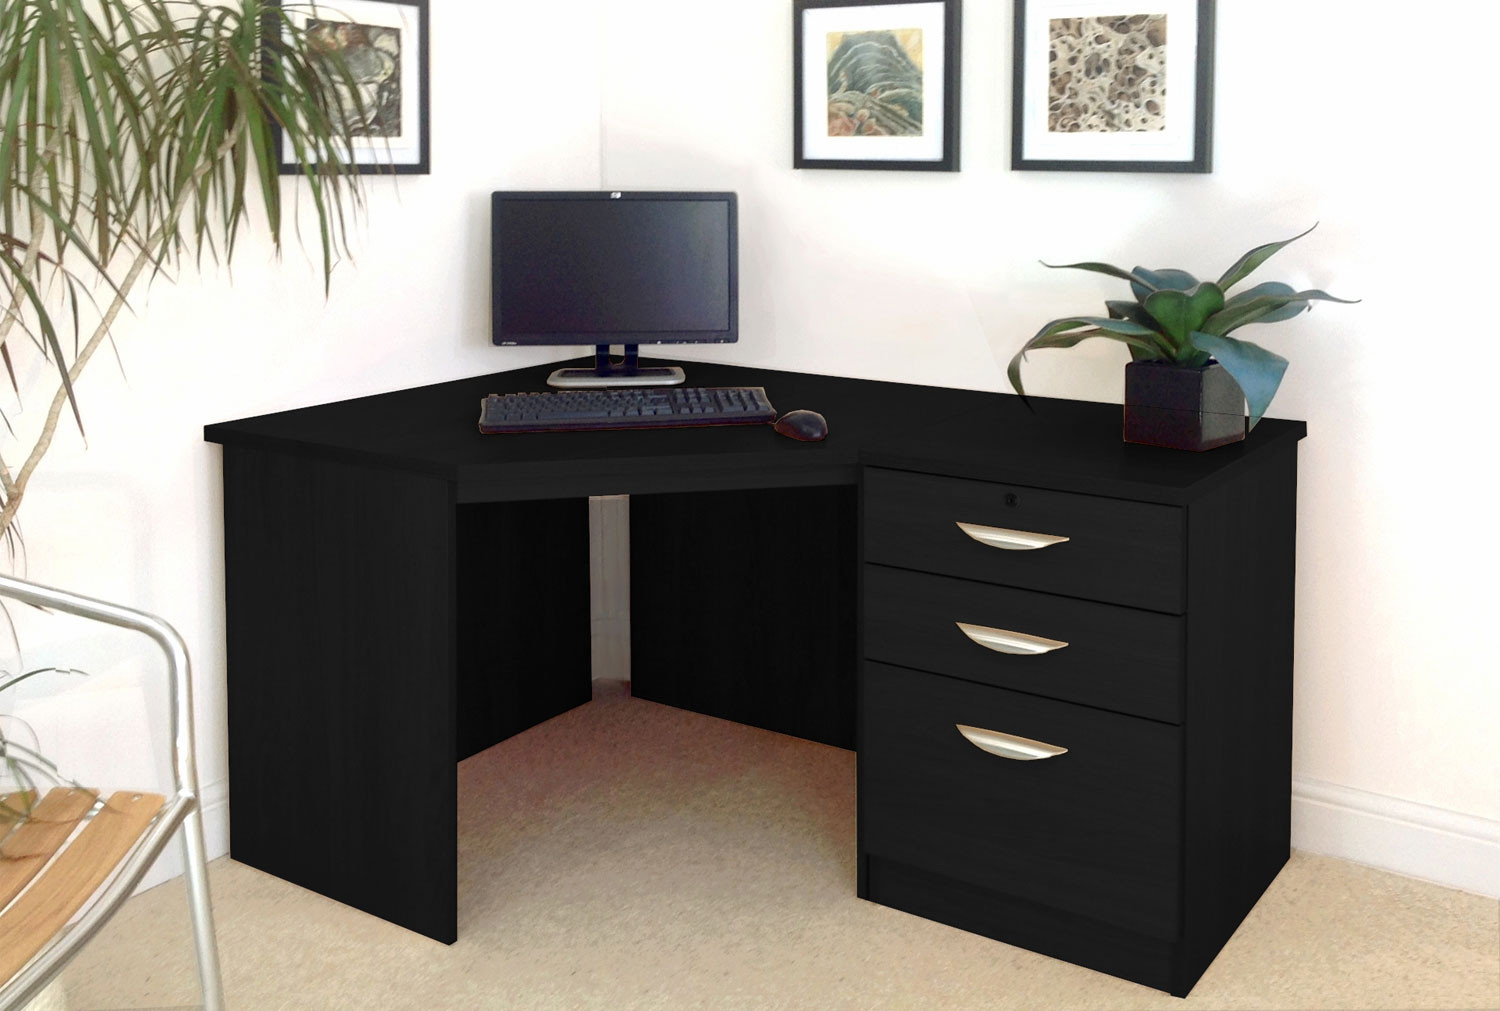 Small Office Corner Desk Set With 3 Drawers Furniture At